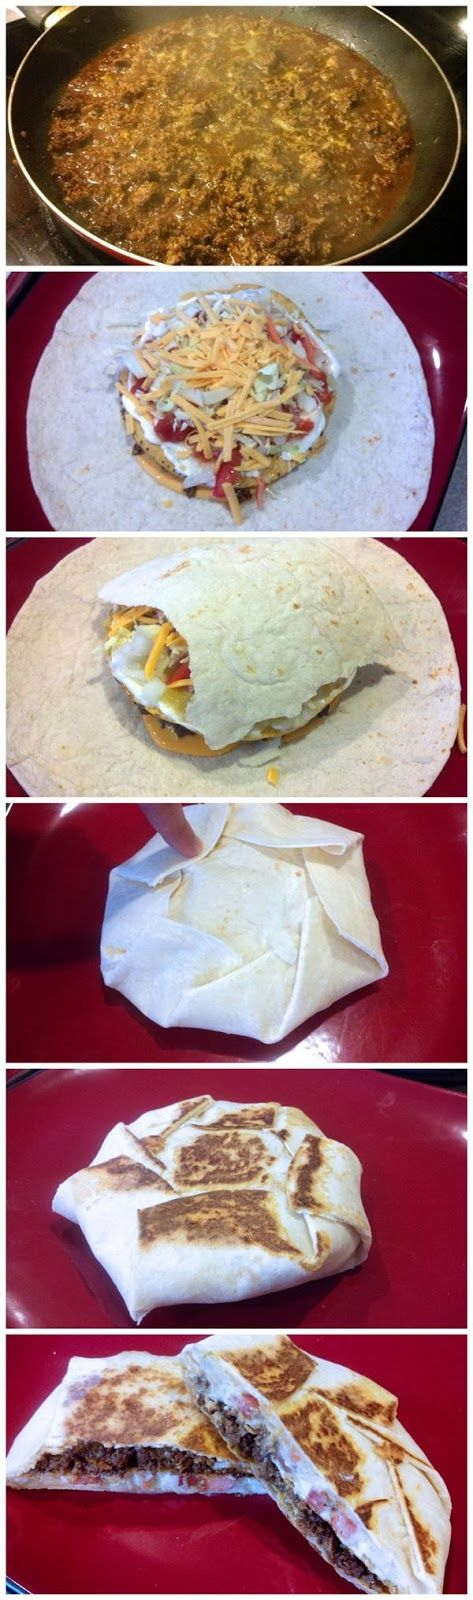 Homemade Crunchwrap Supreme Recipe! OMG Daniel and I have been wanting to makes these!